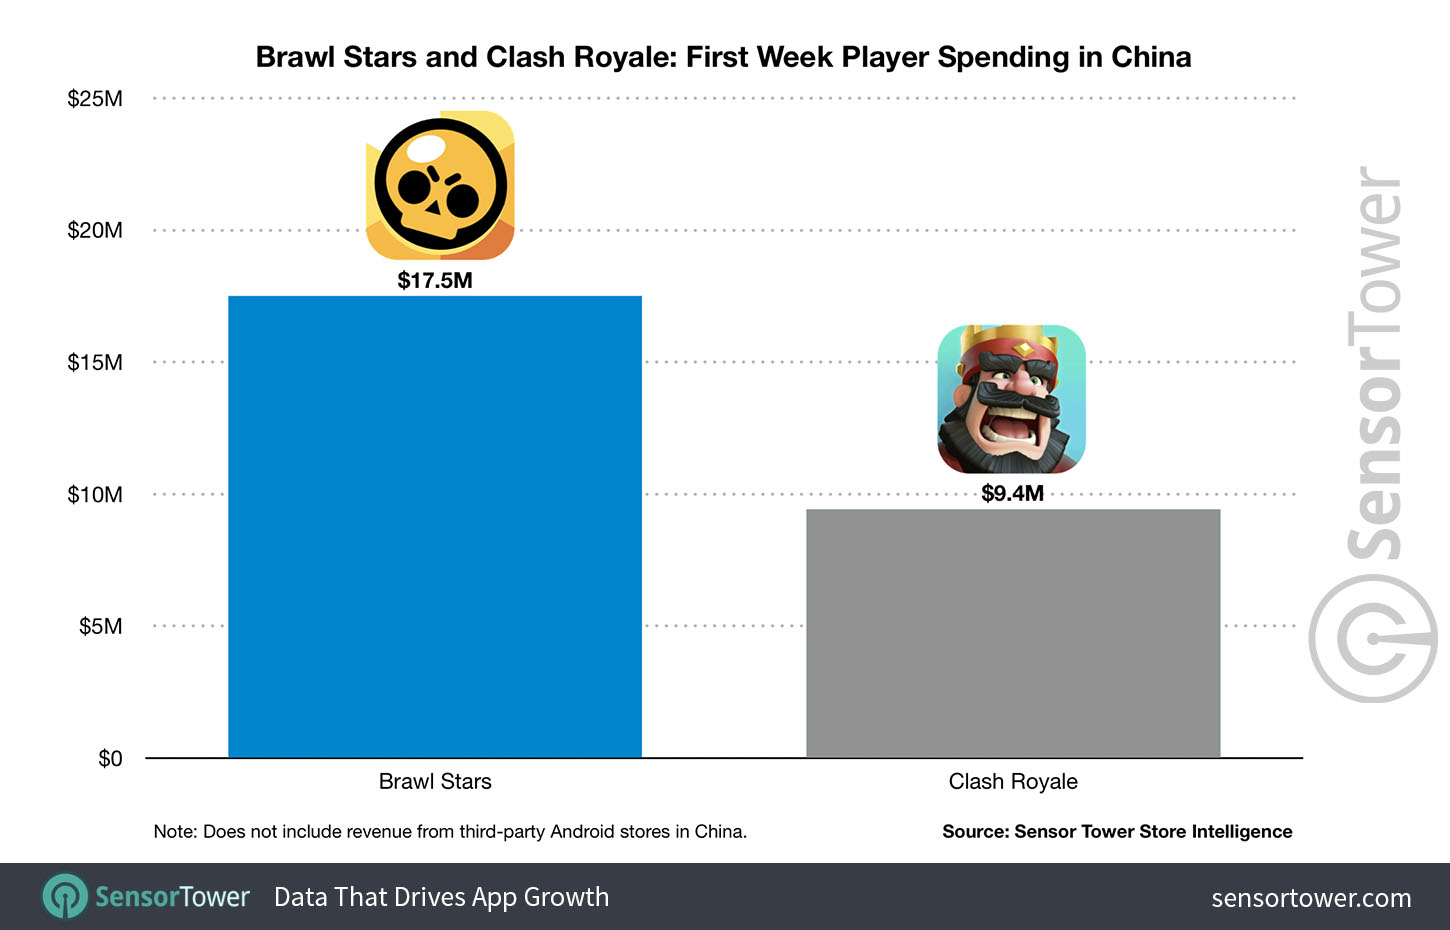 brawl-stars-clash-ryale-first-week-player-spending-china